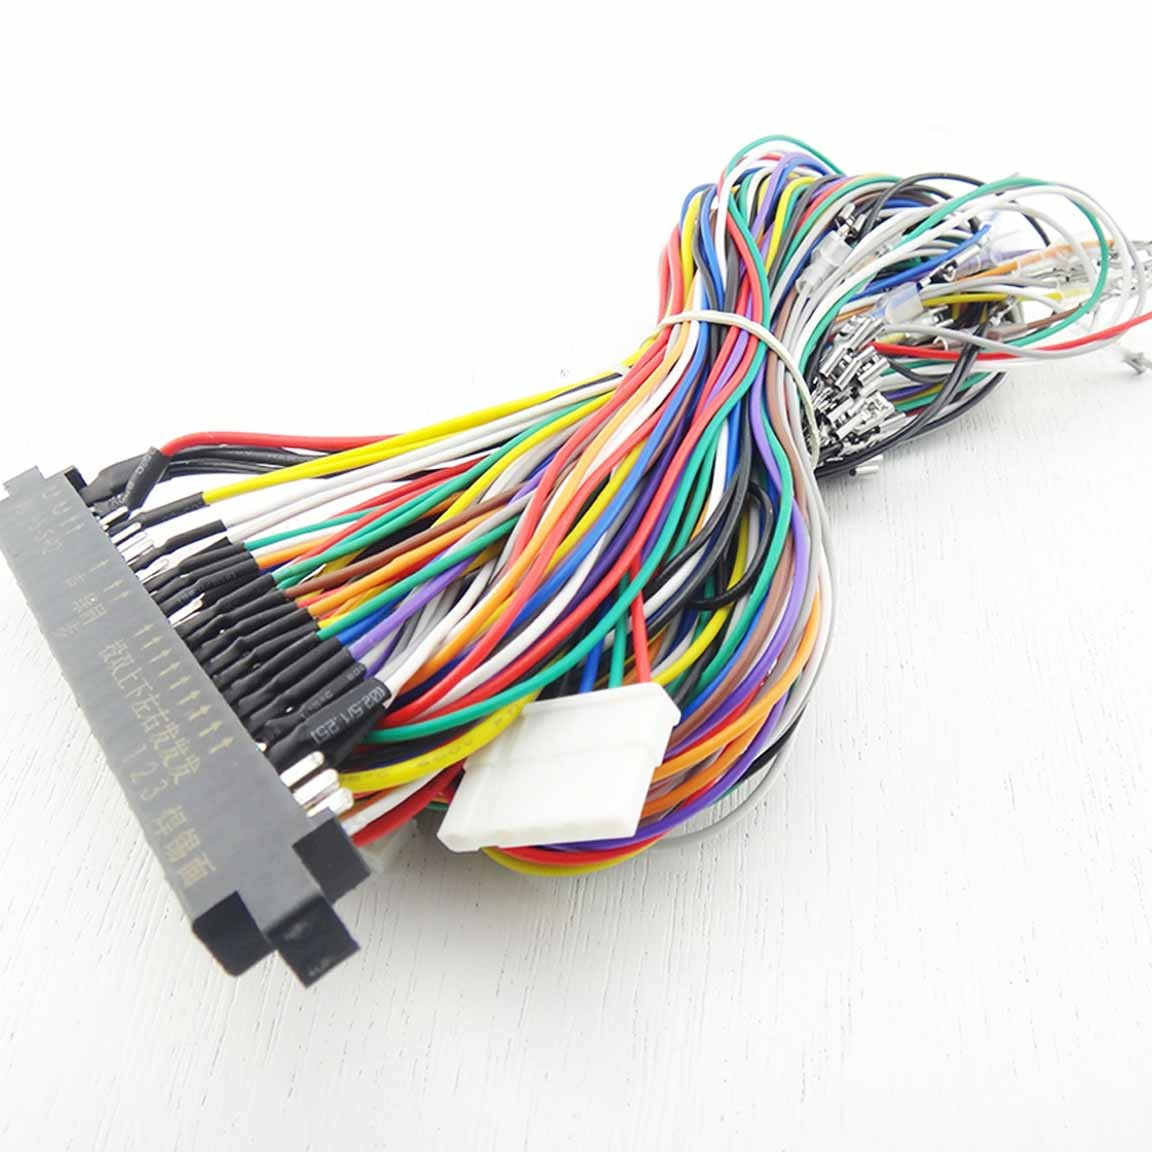 Arcade Jamma Wiring Harness 28mm Cover